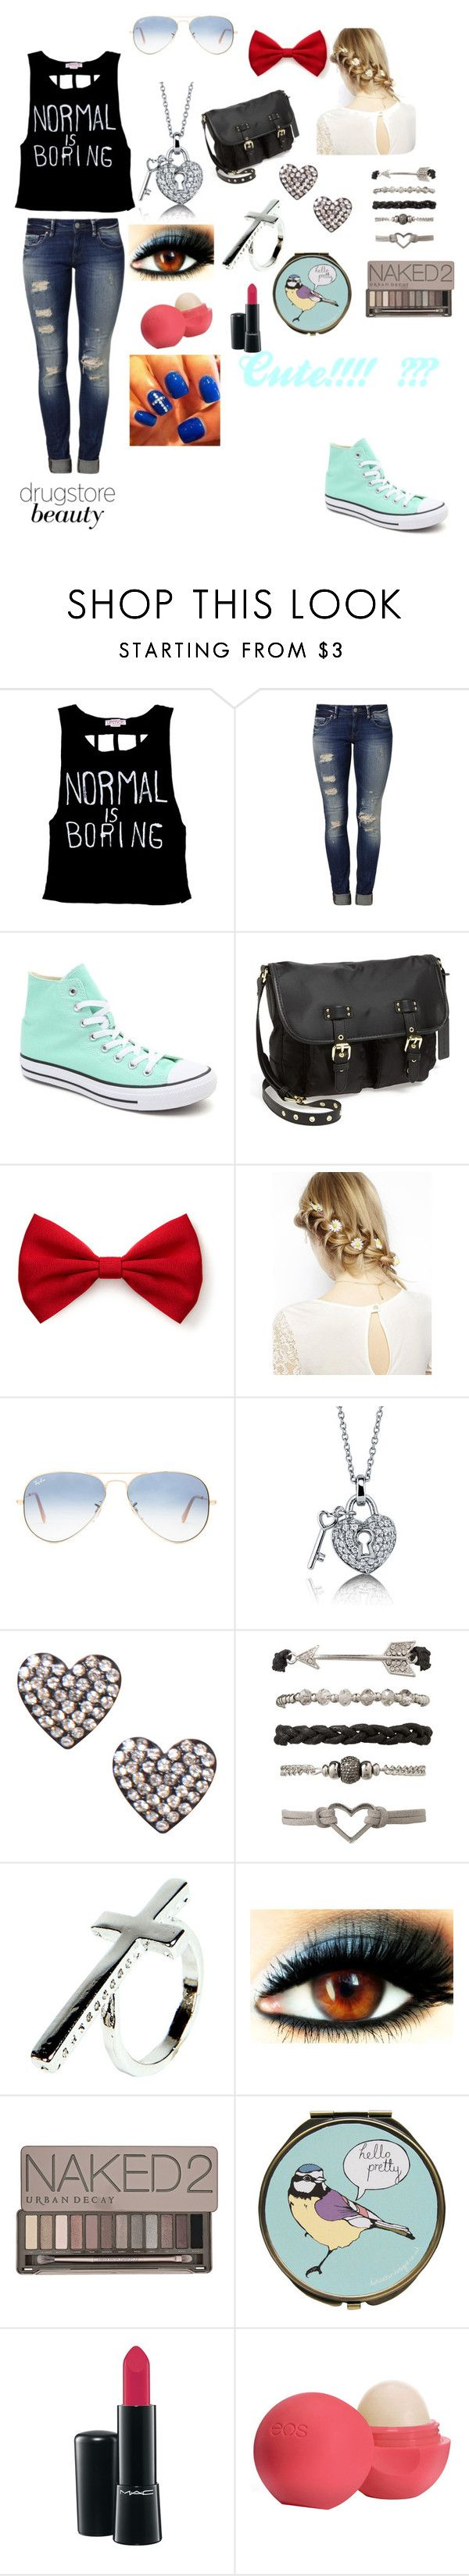 """CUTE OUTFIT 4 2MORROW!!!"" by lalagirl27-1 ❤ liked on Polyvore featuring Mavi, Converse, Steve Madden, Forever 21, ASOS, Ray-Ban, BERRICLE, Boohoo, Urban Decay and MAC Cosmetics"